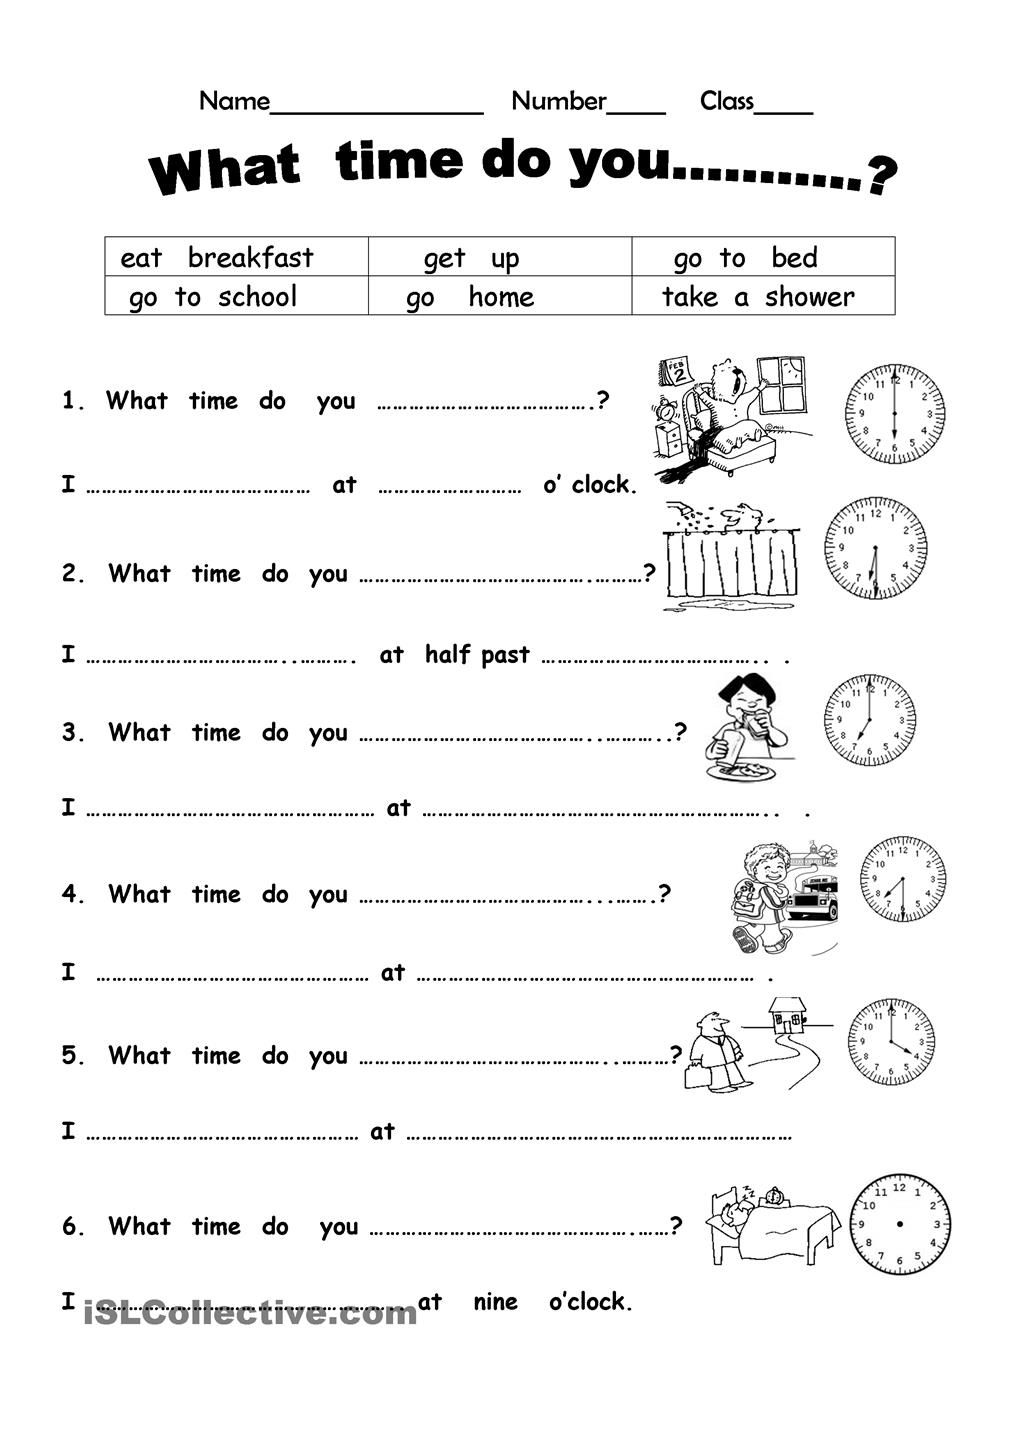 What time do you? English worksheets for kids, Time